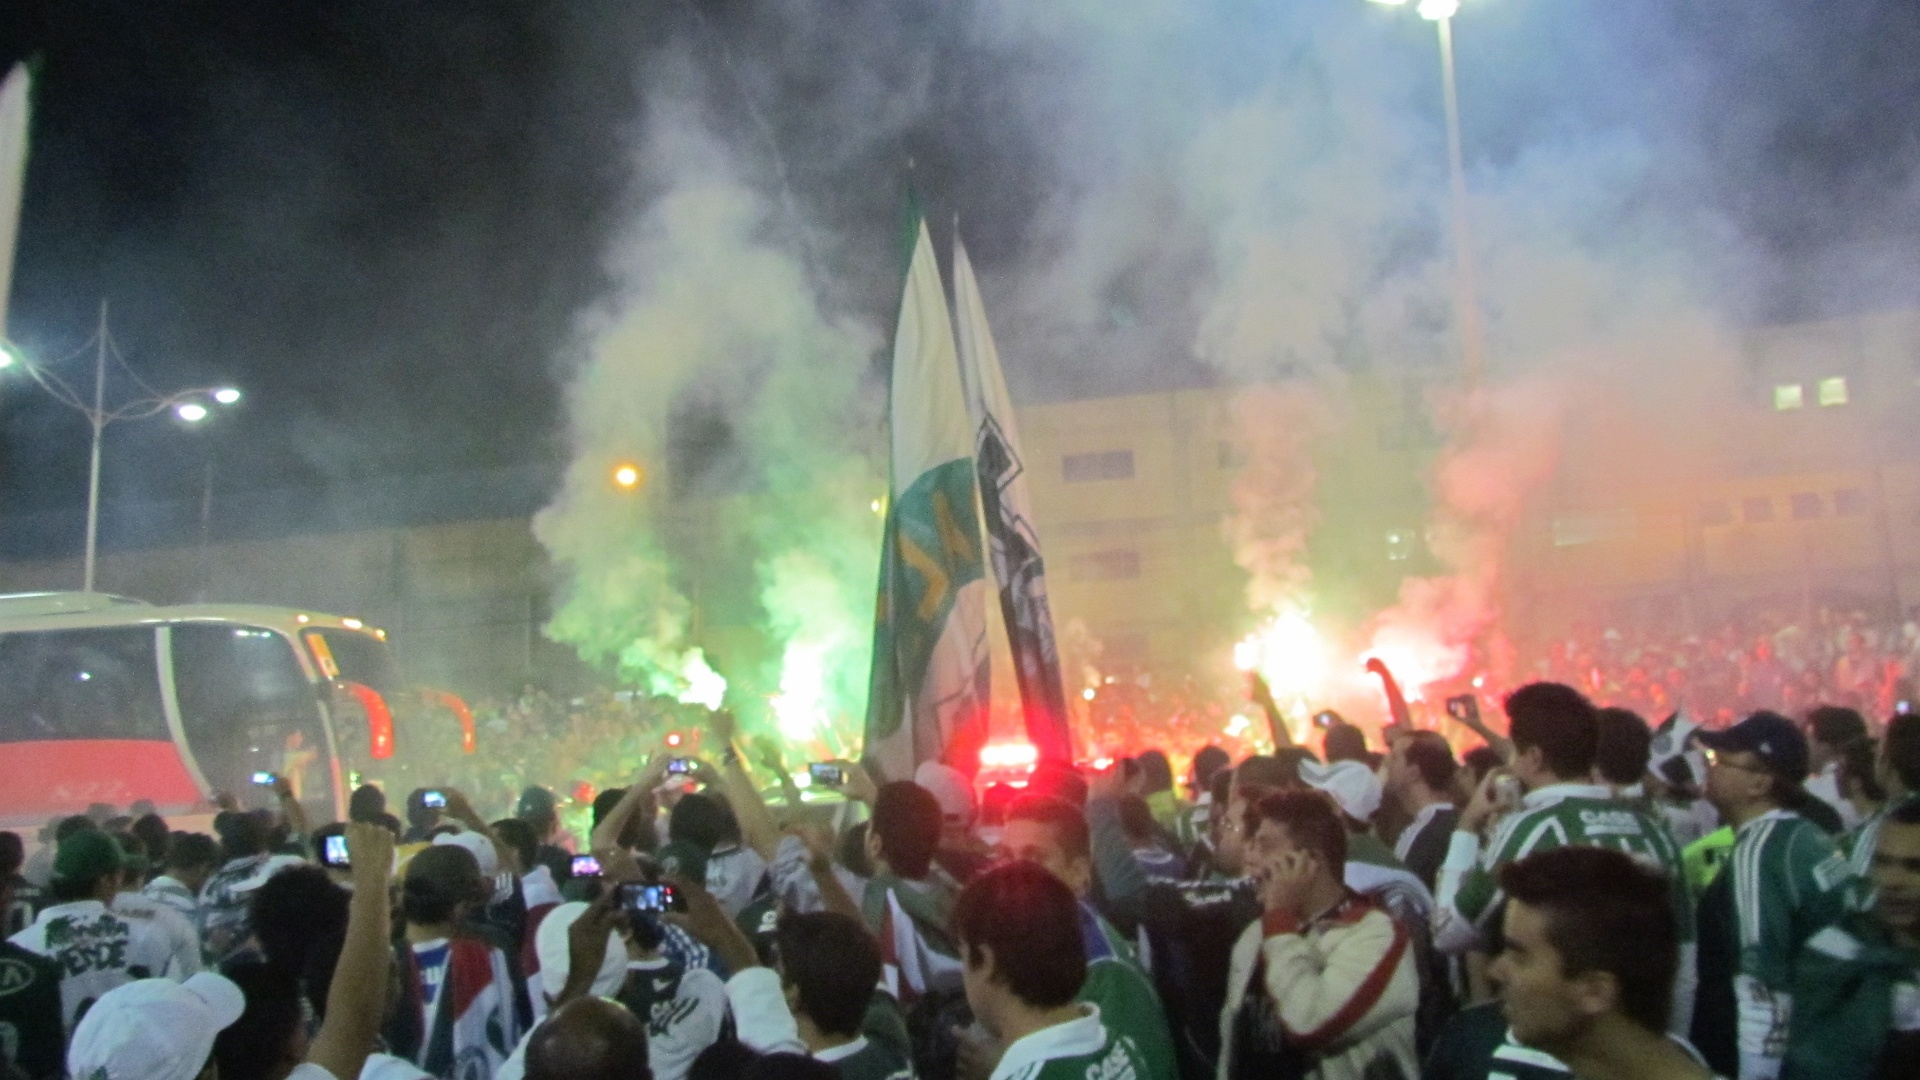 Conforme prometido at em cartaz, a torcida do Palmeiras imitou a do Coritiba e criou o 